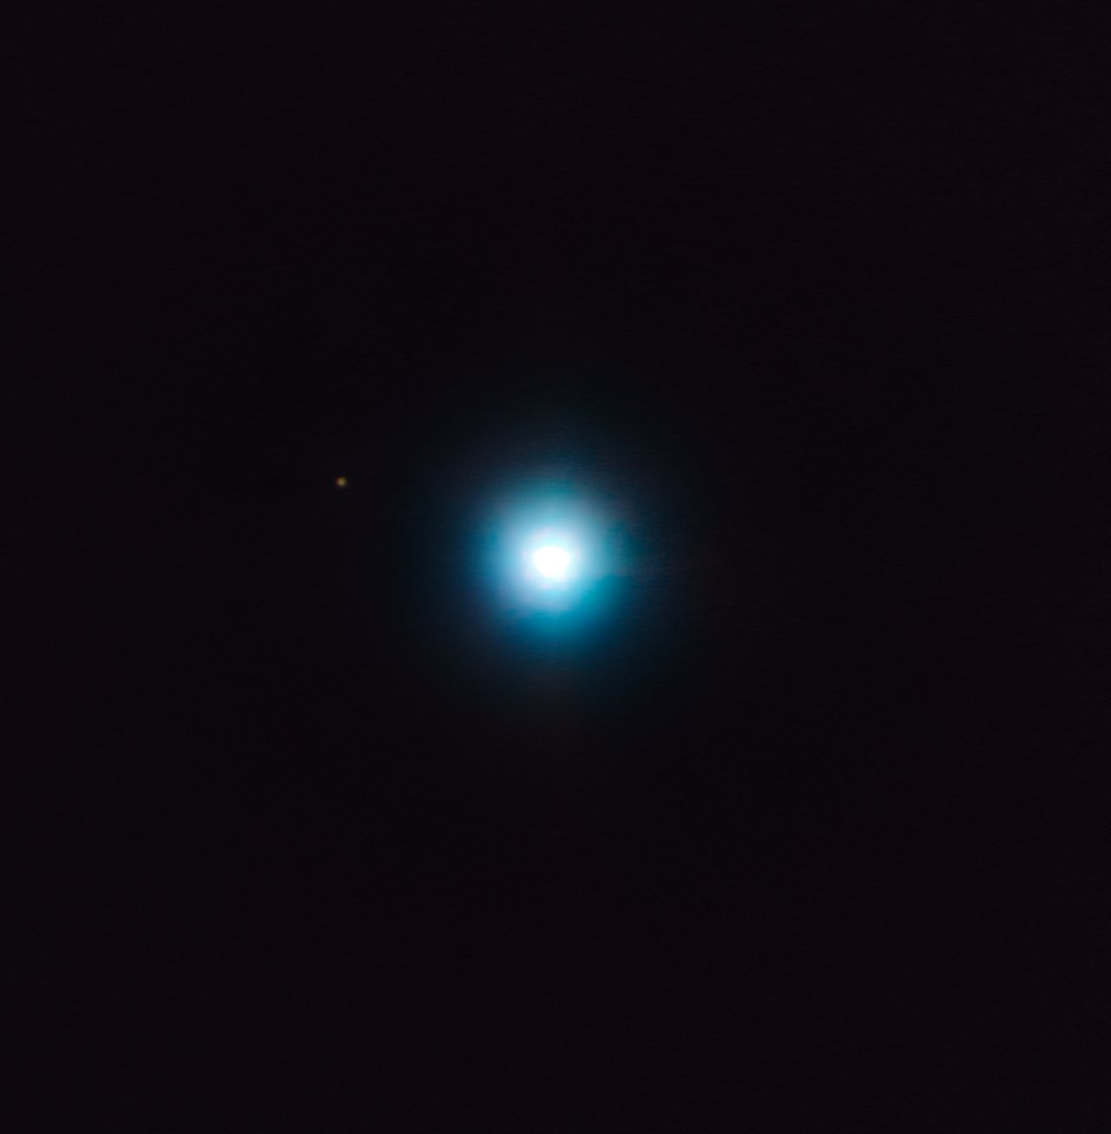 direct observation of exoplanet - photo #21